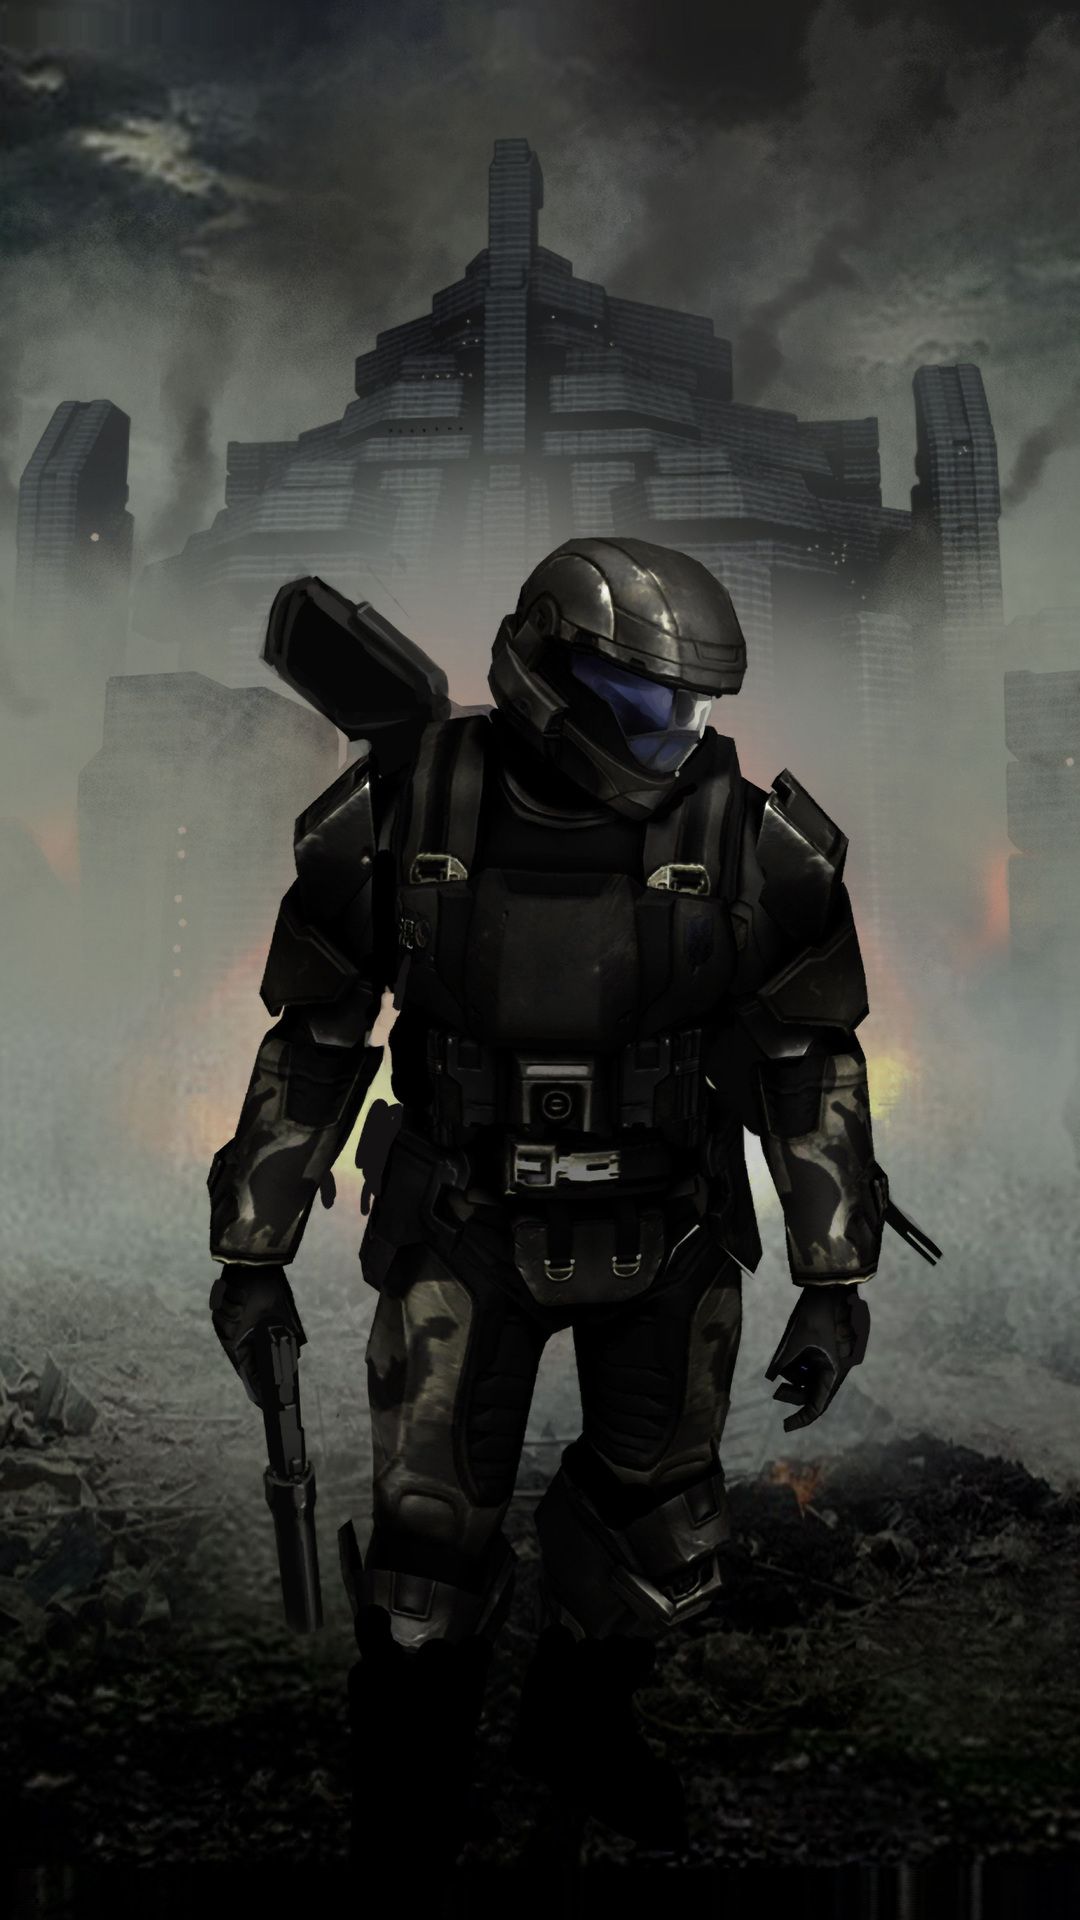 1080x1920 halo 3 odst concept art 4k iphone 7,6s,6 plus, pixel xl